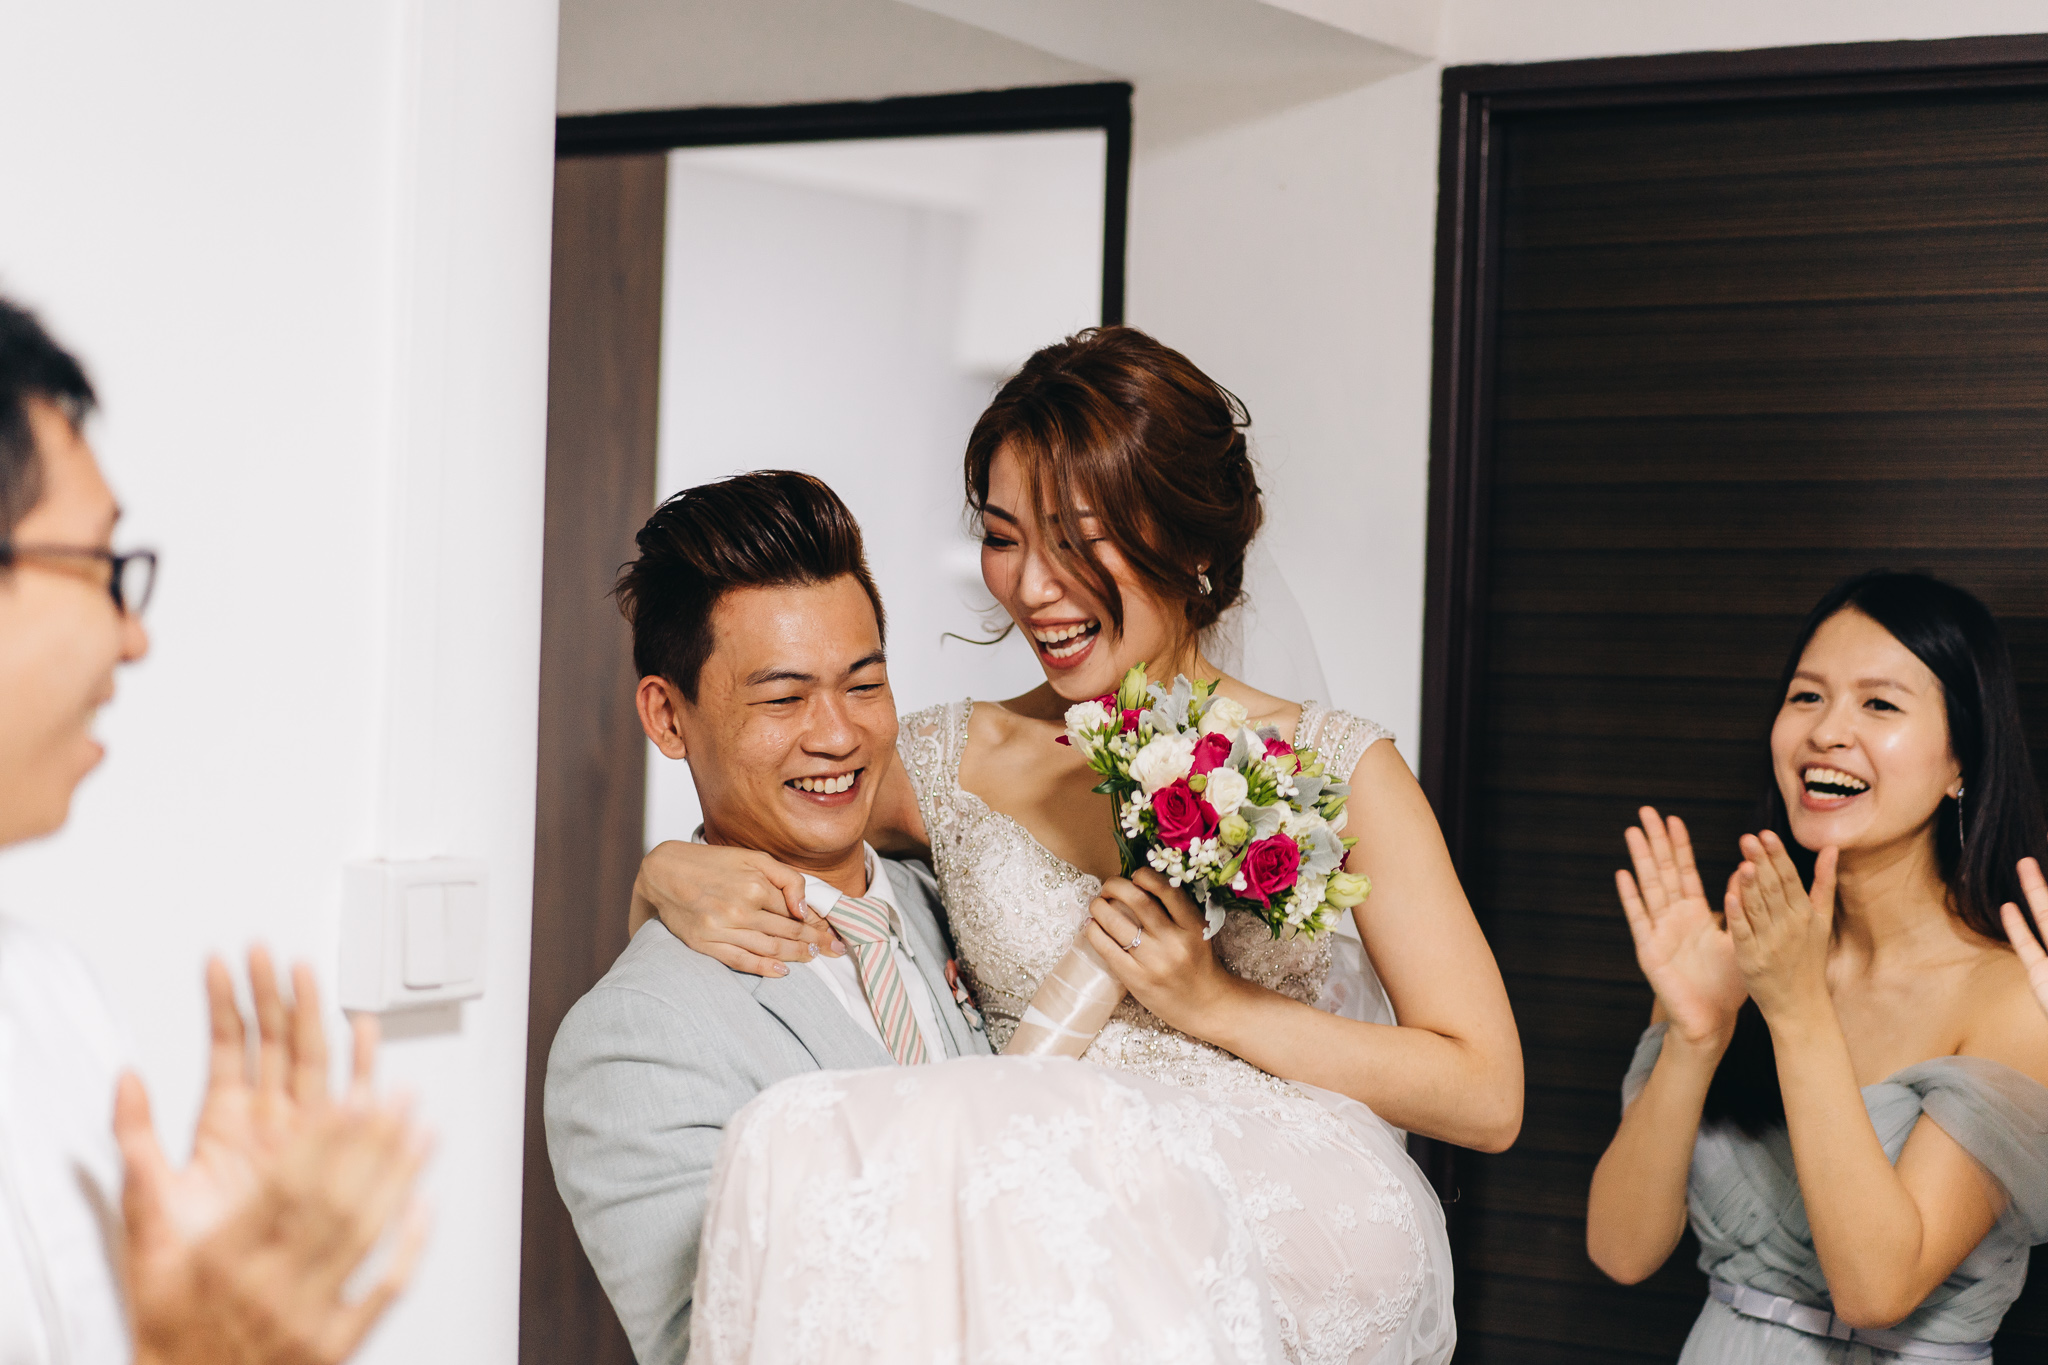 Cindy & Kevin Wedding Day Highlights (resized for sharing) - 082.jpg